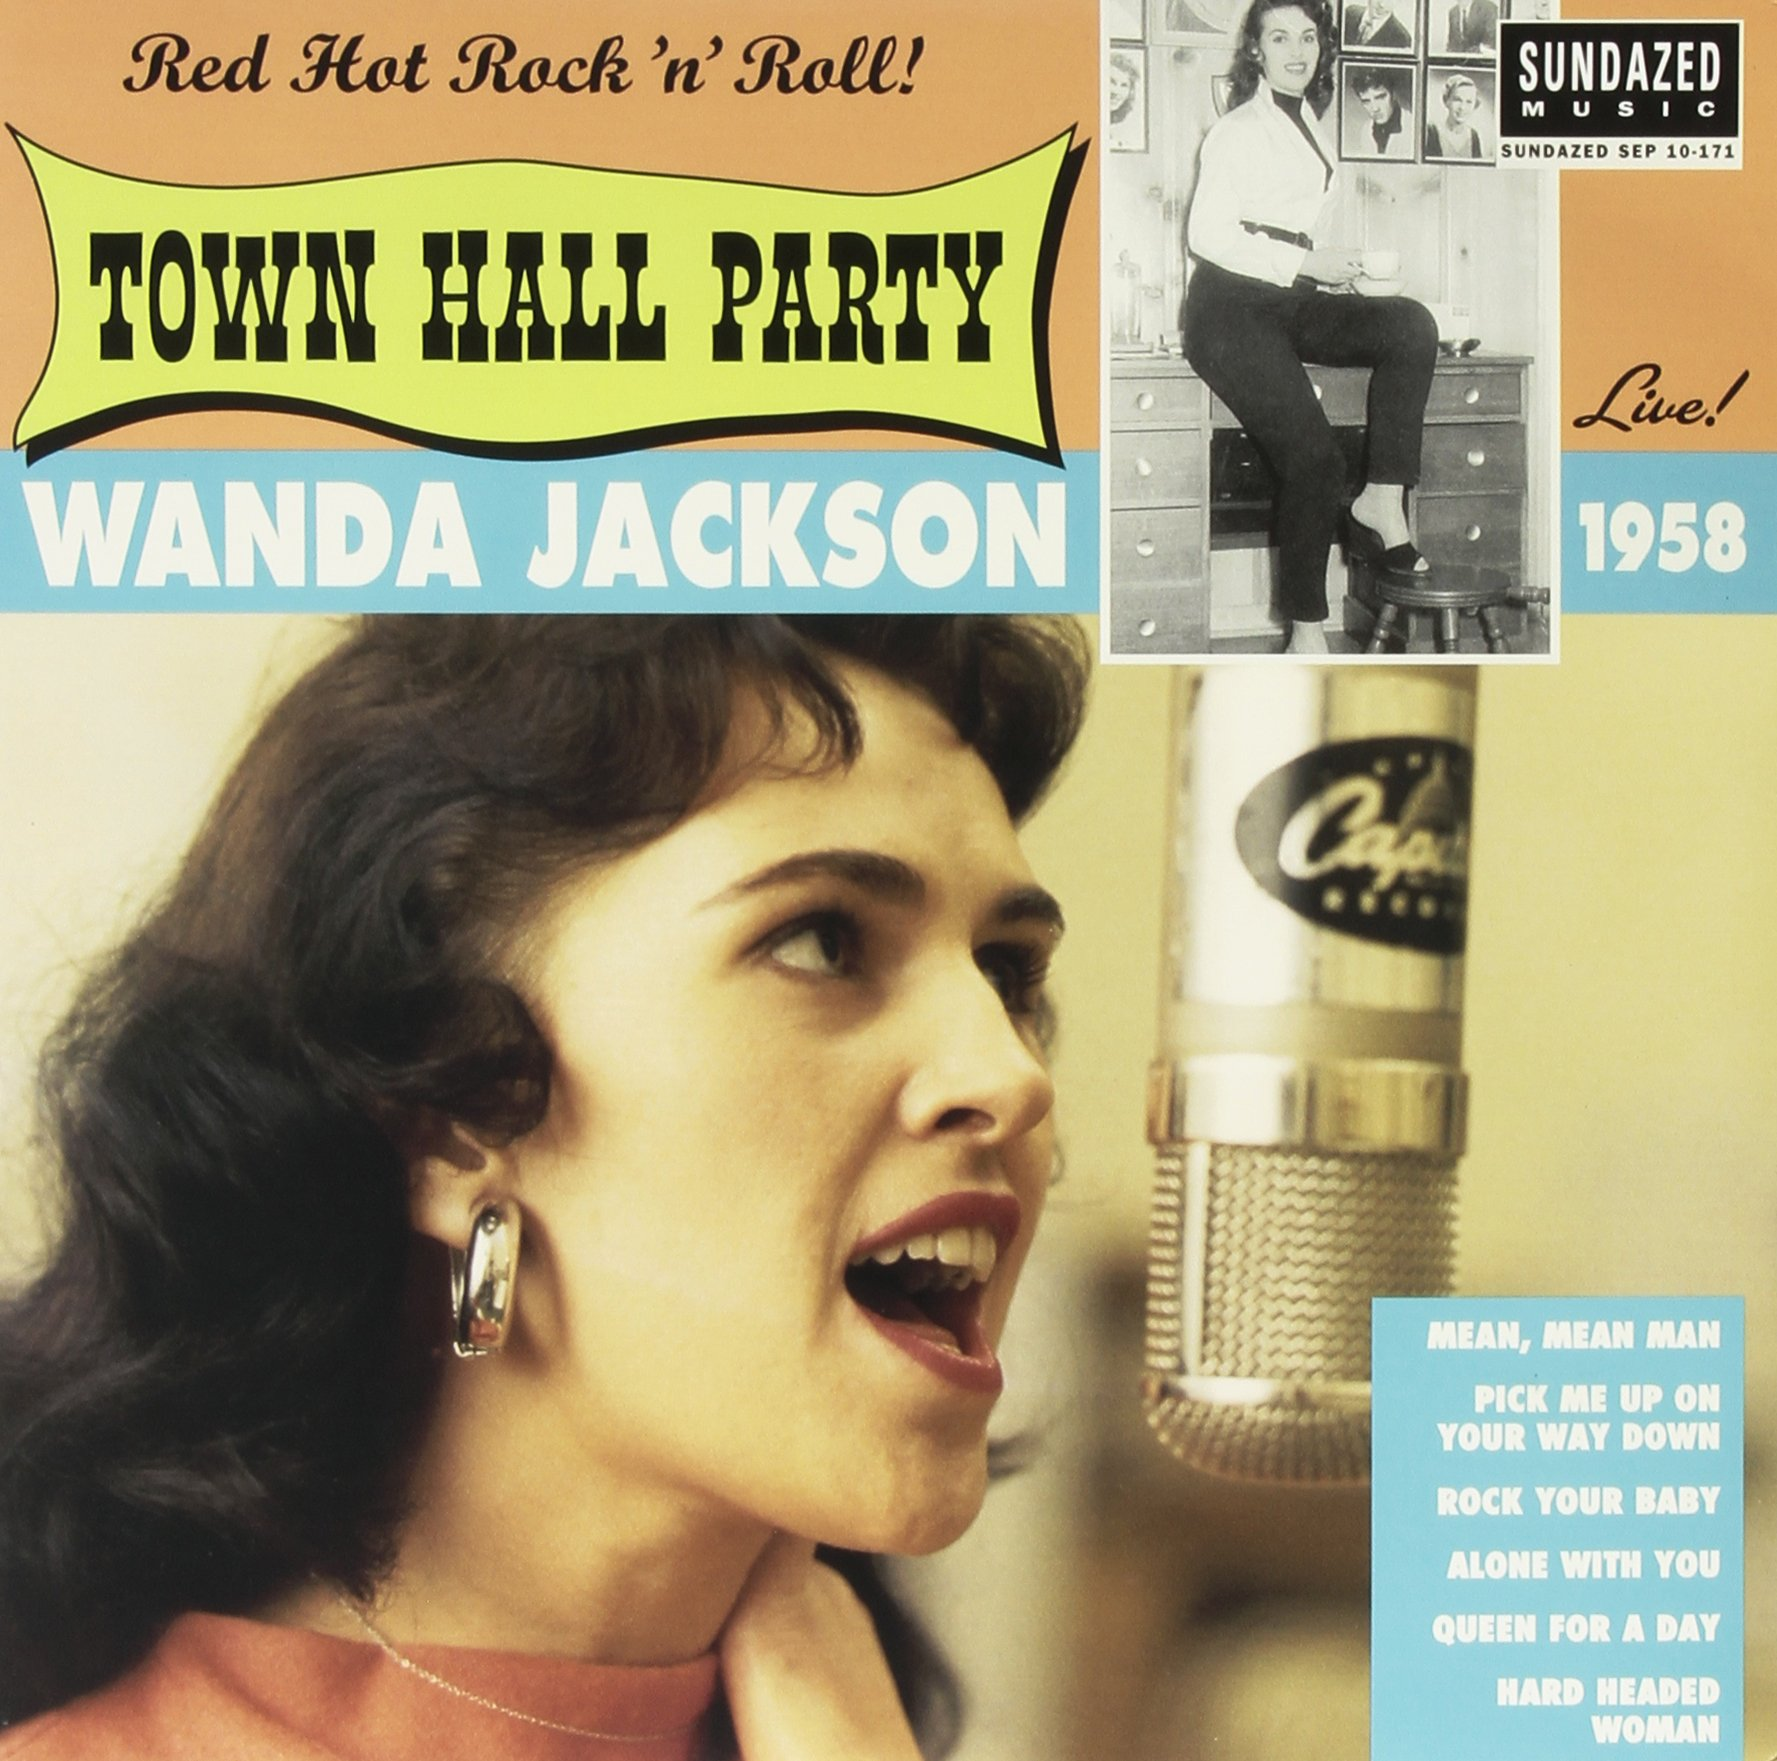 Live at Town Hall Party [Vinyl]